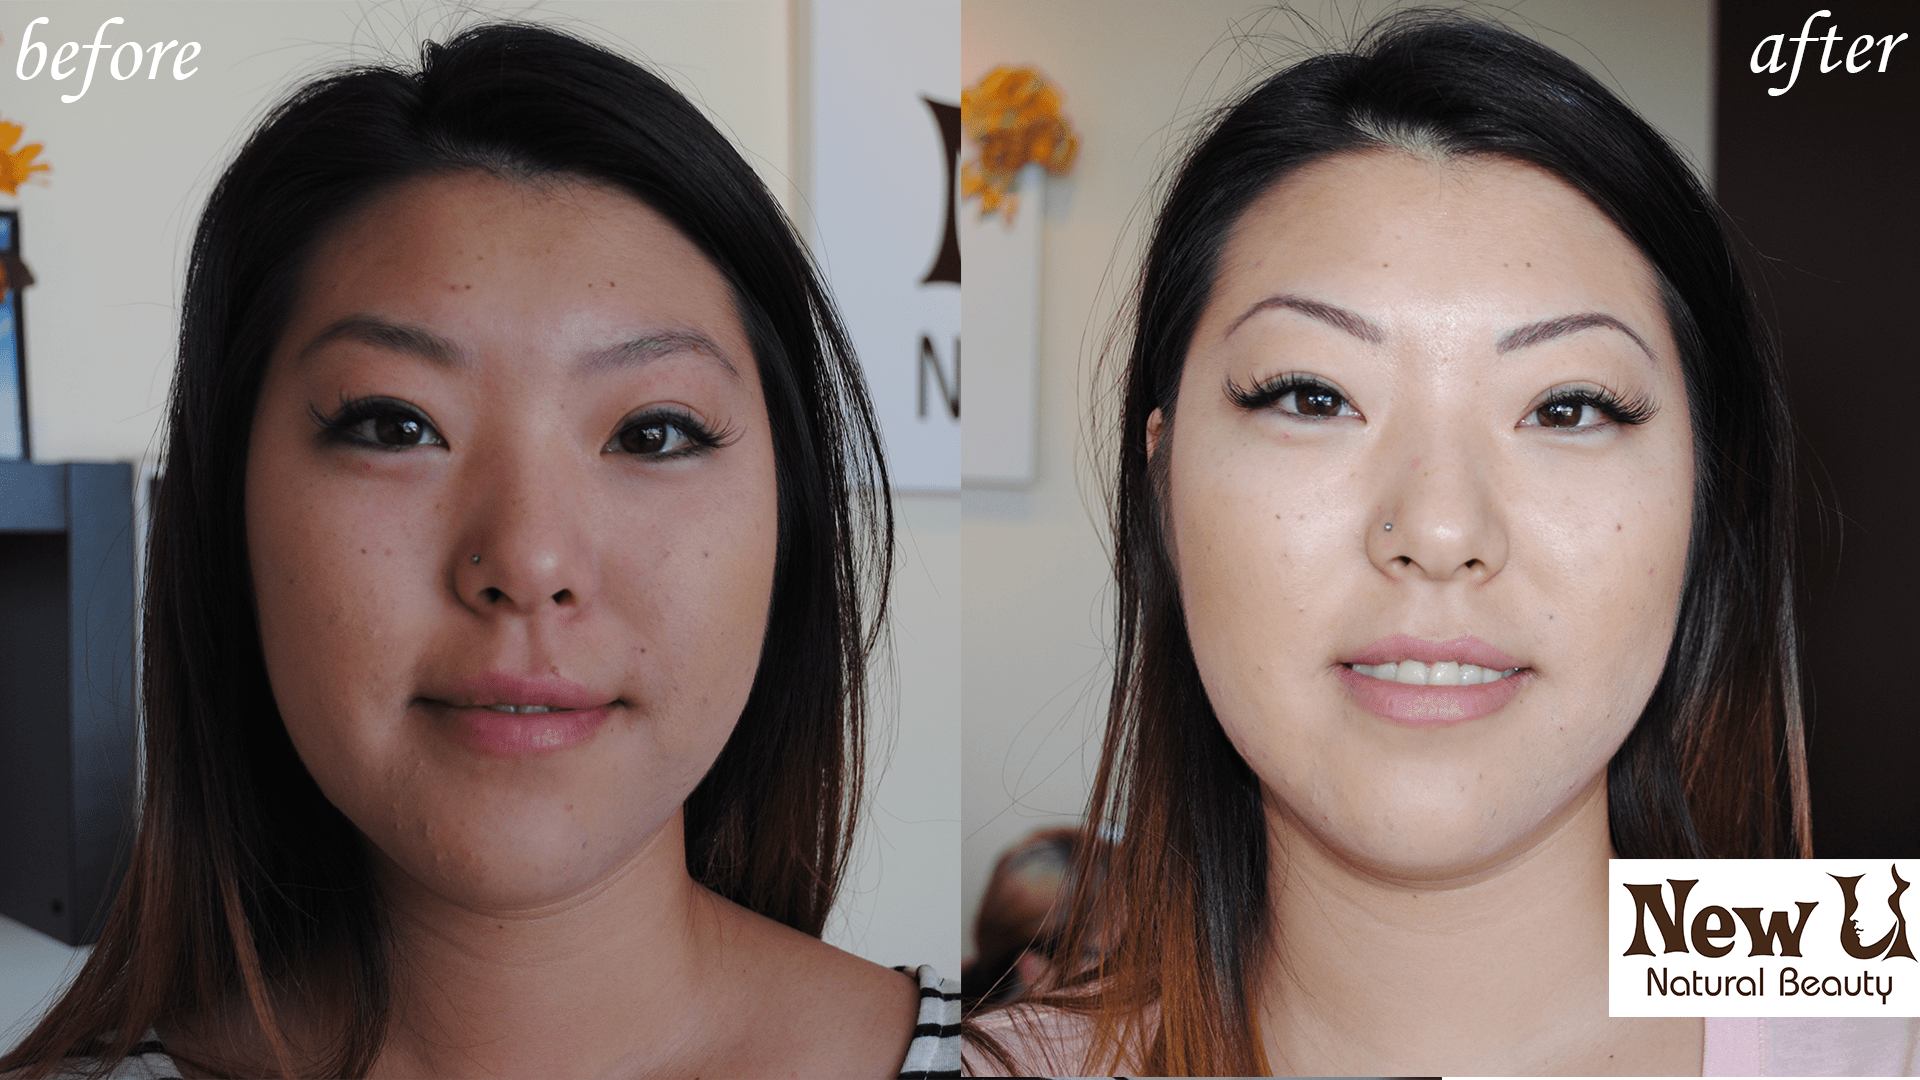 permanent-makeup-3-las-vegas-before-after | new u